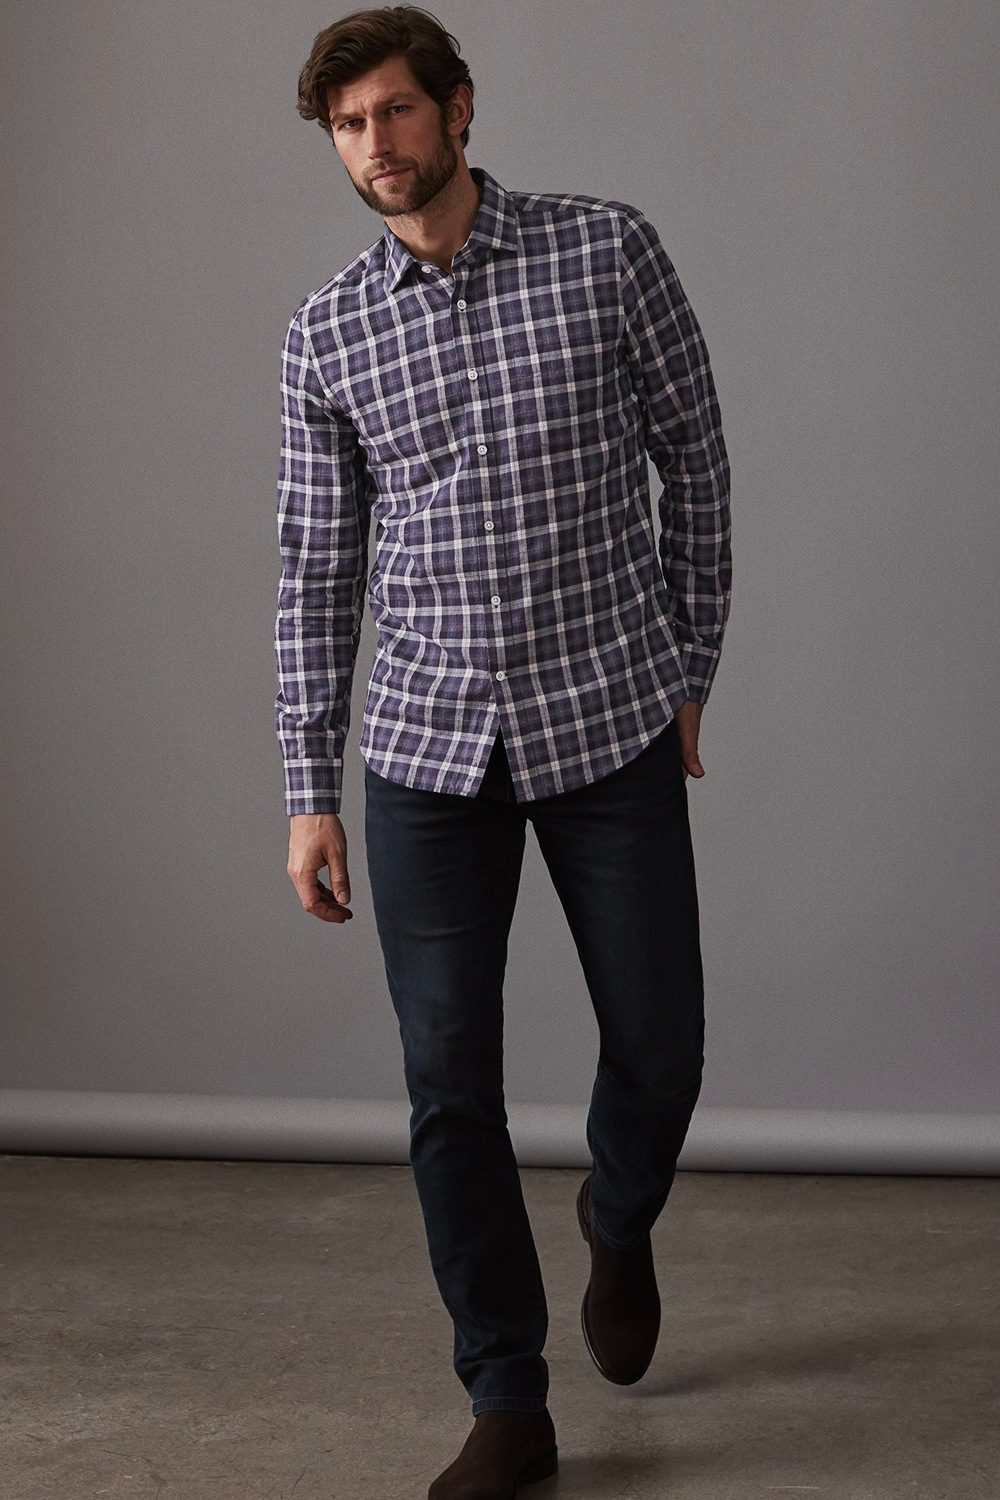 Top 4 Ways To Wear A Flannel Shirt For Men